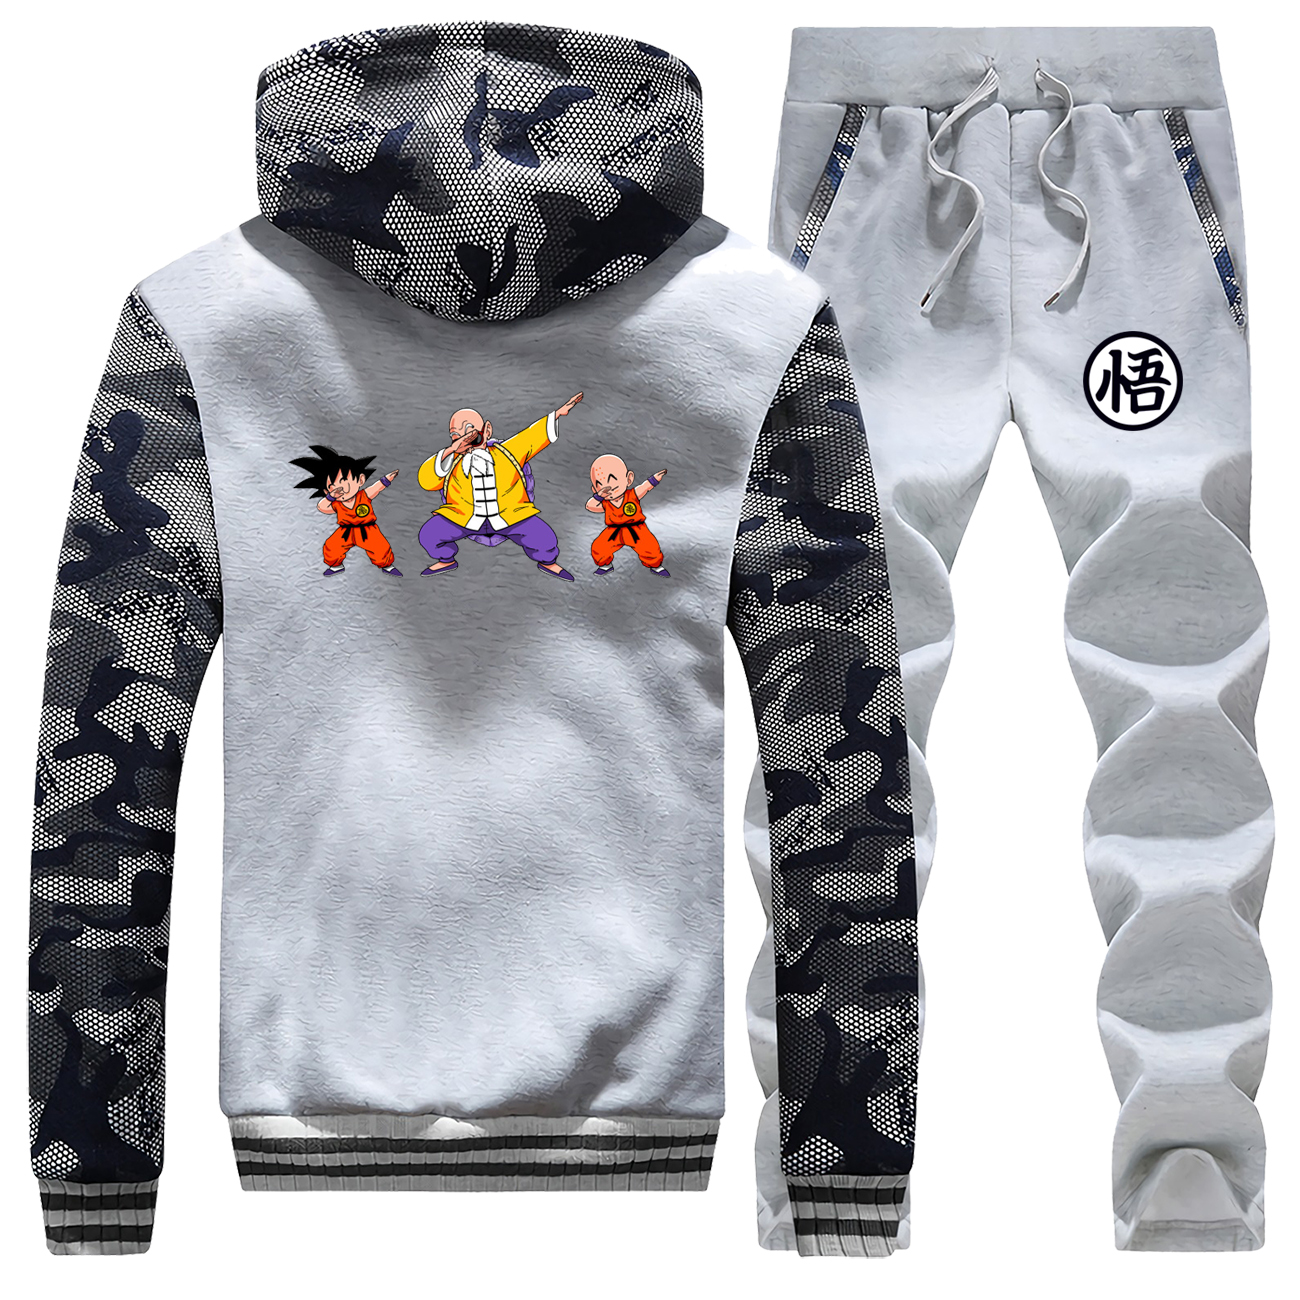 Japanese Anime Dragon Ball Z Camo Sweatshirt Men Saiyan Fleece Sportswear Hoodies Pants Sets Men Plus Size Hip Hop Streetwear